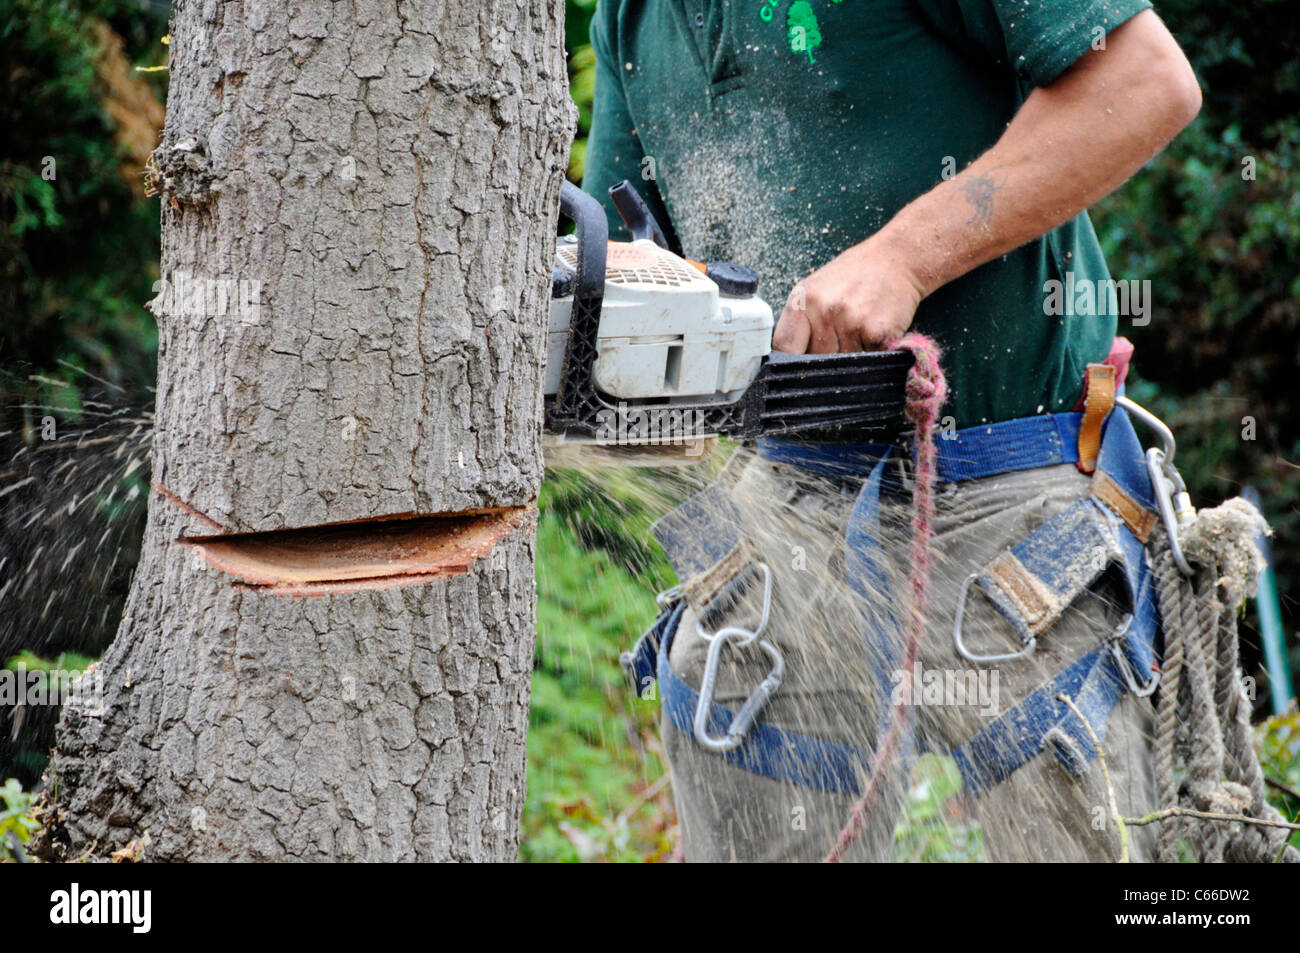 Close up professional male Arborist holding a hand held petrol driven chain saw machine to cut through an oak tree Stock Photo